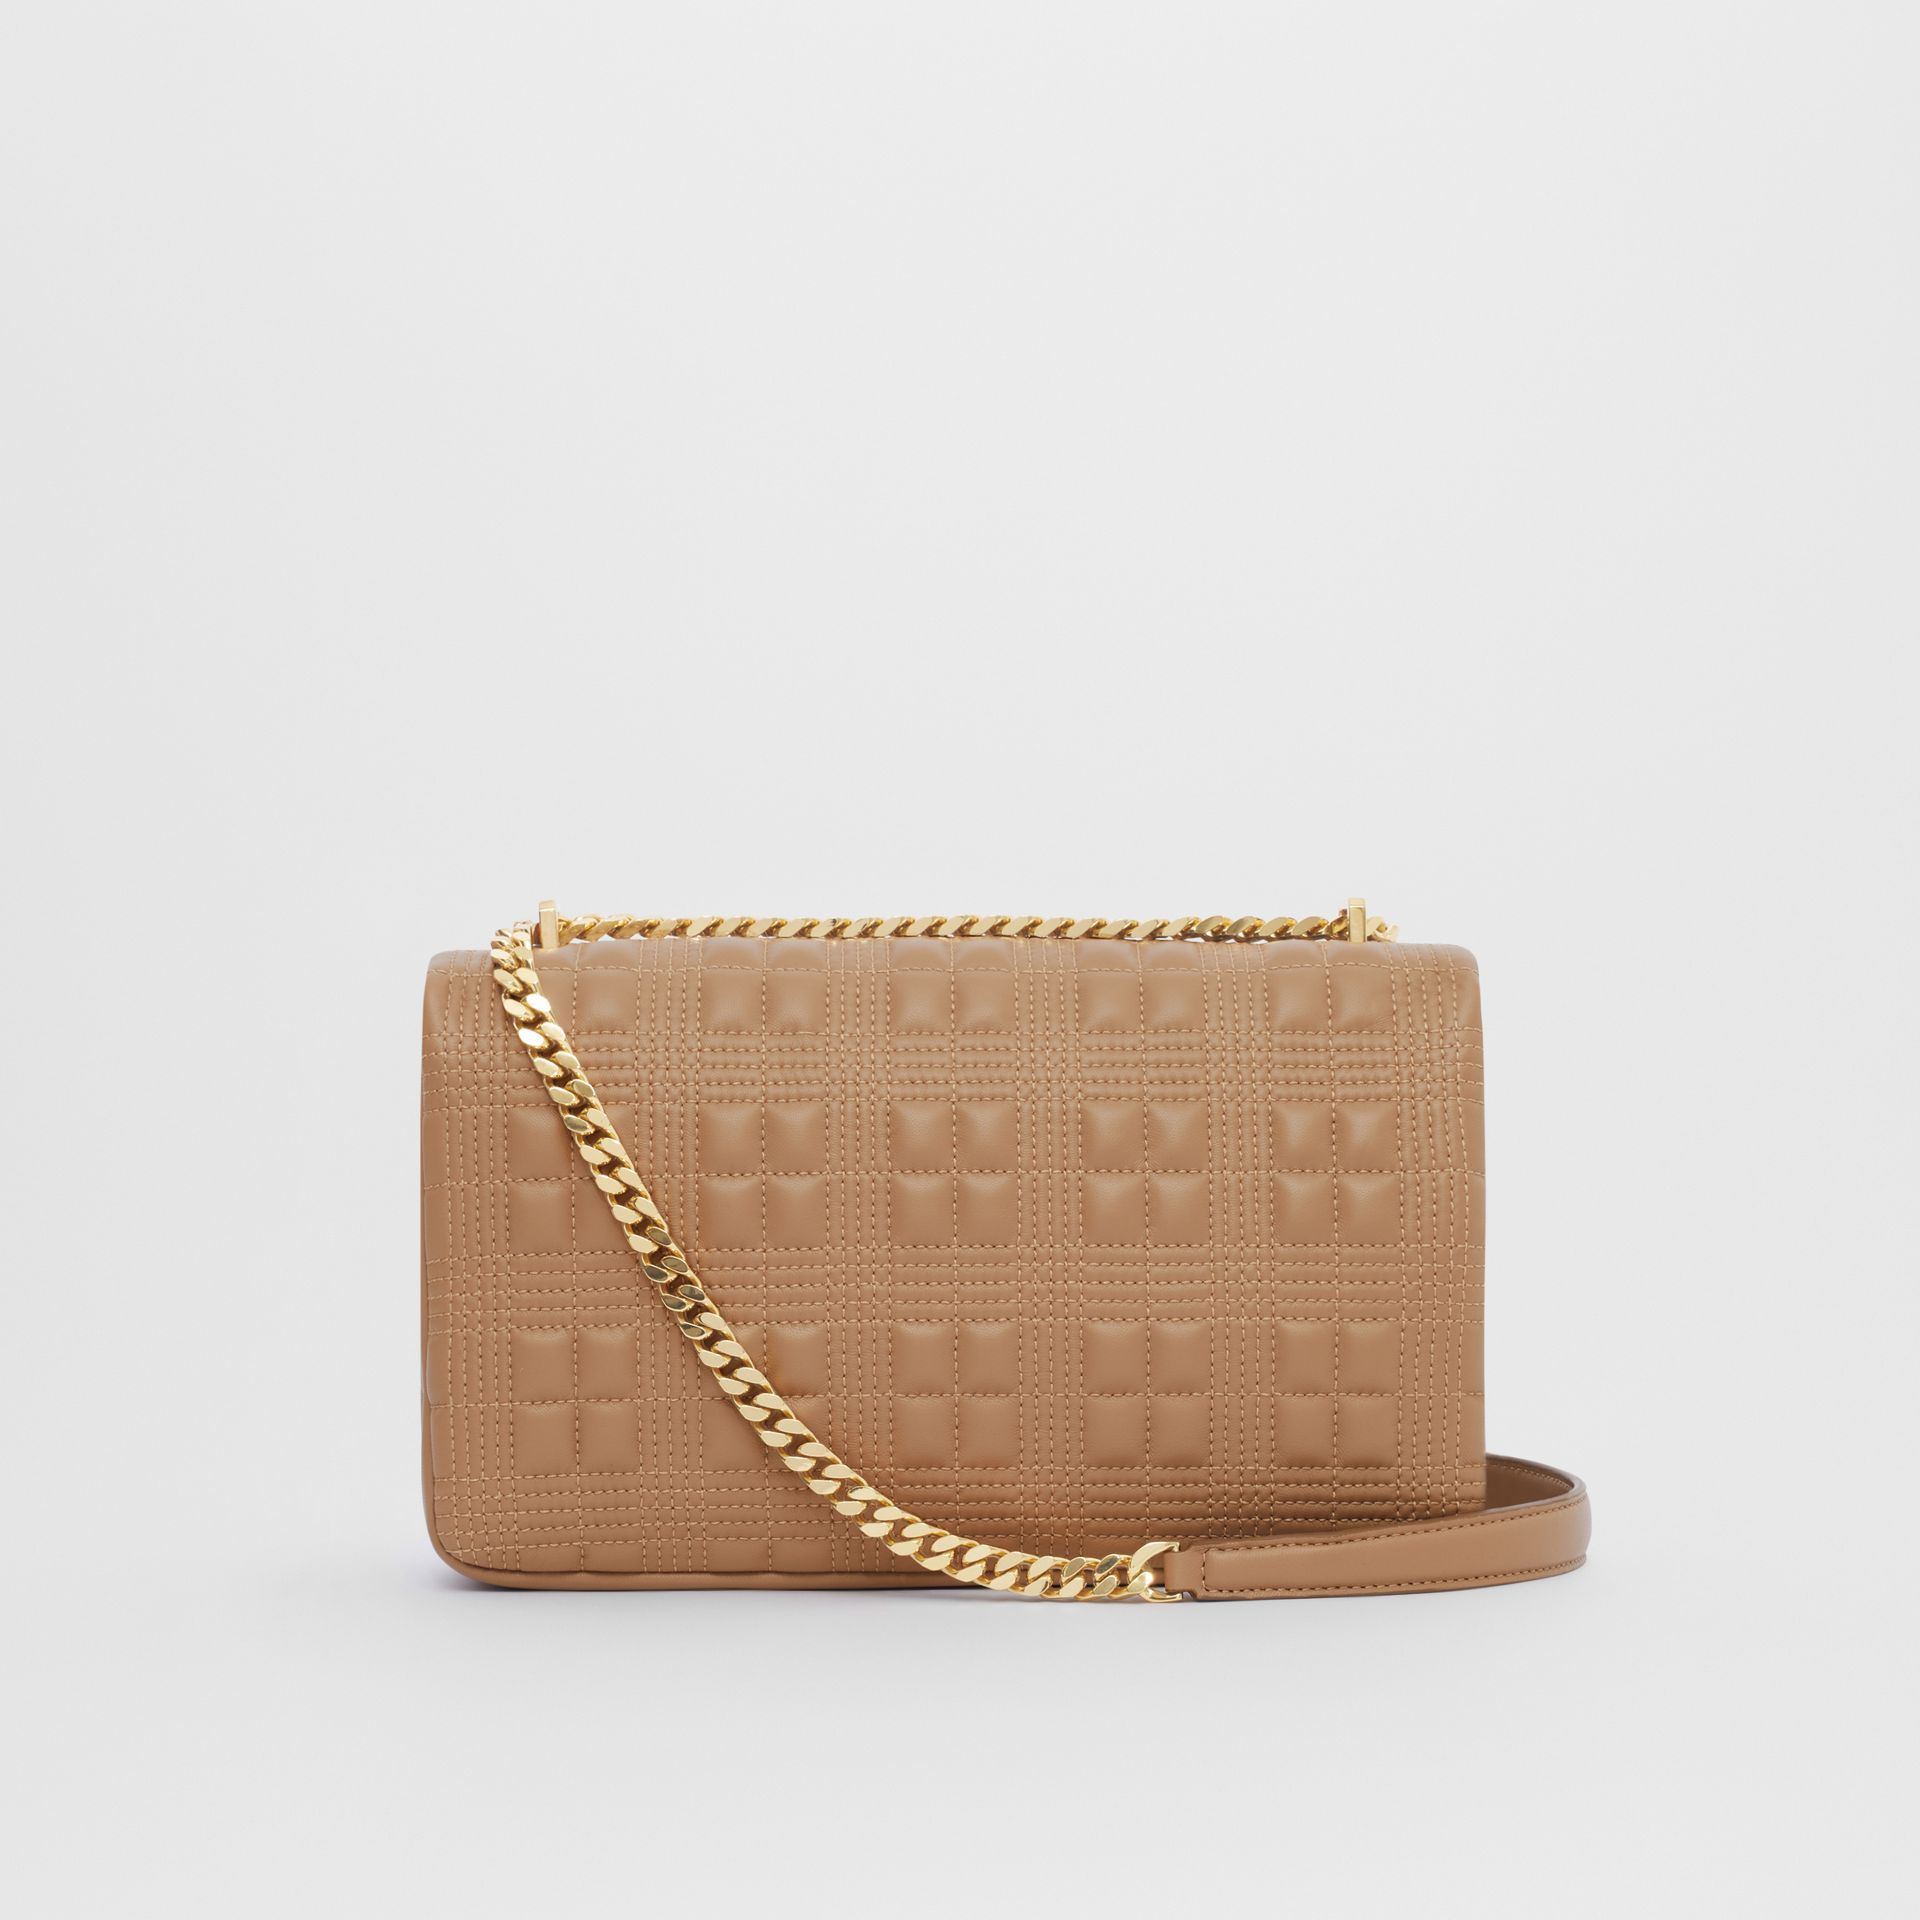 Medium Quilted Lambskin Lola Bag in Camel - Women | Burberry - gallery image 7